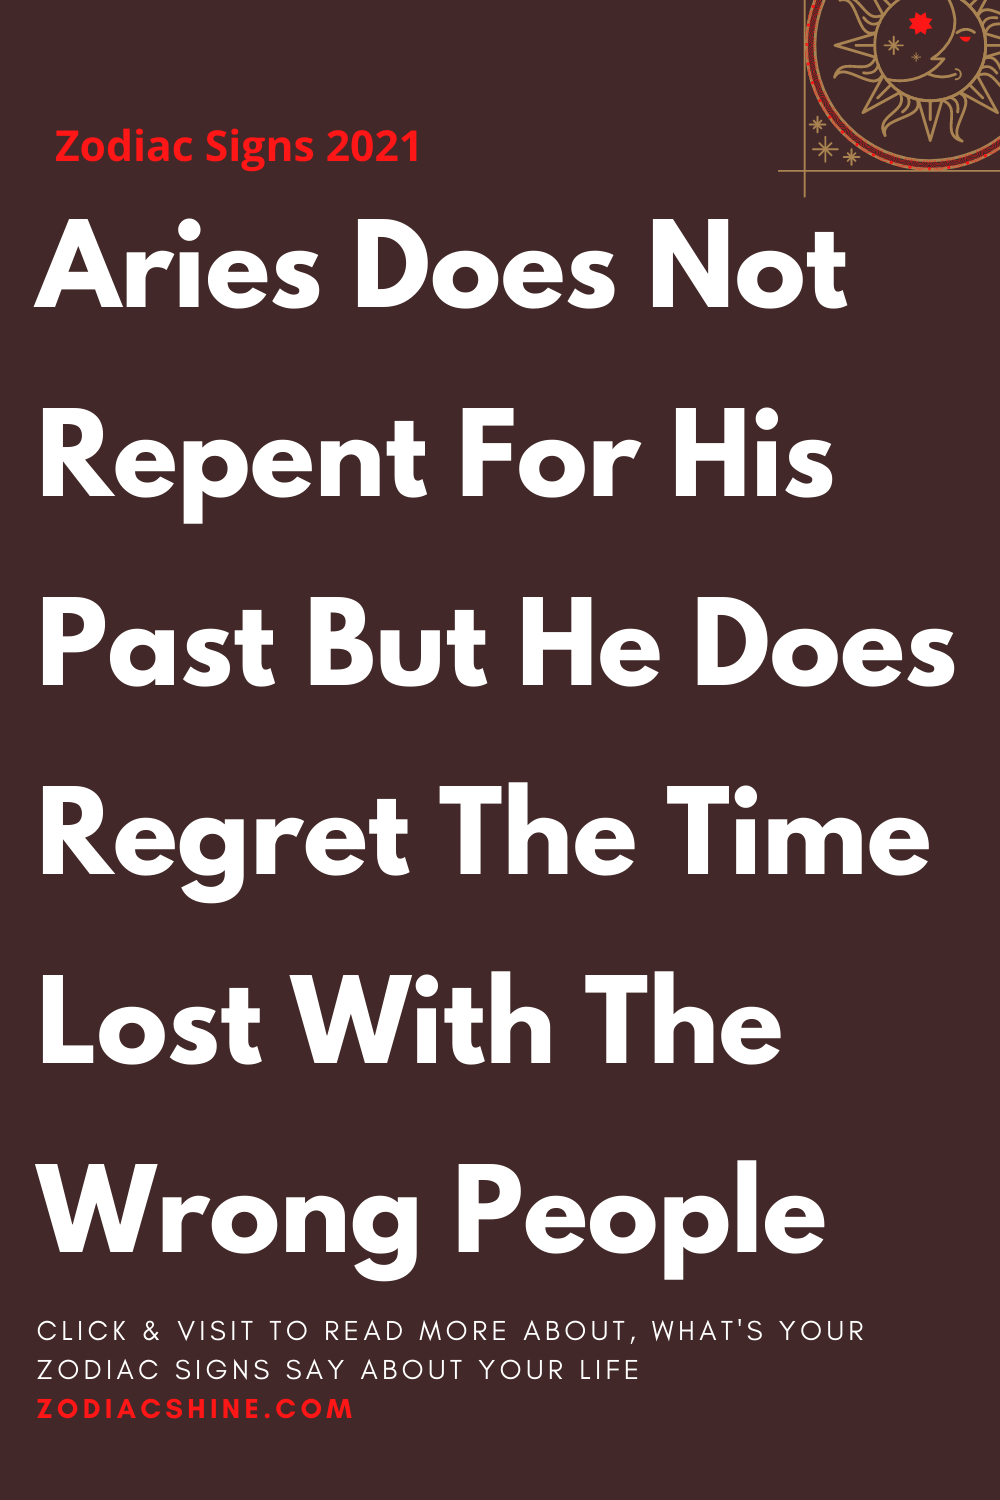 Aries Does Not Repent For His Past But He Does Regret The Time Lost With The Wrong People